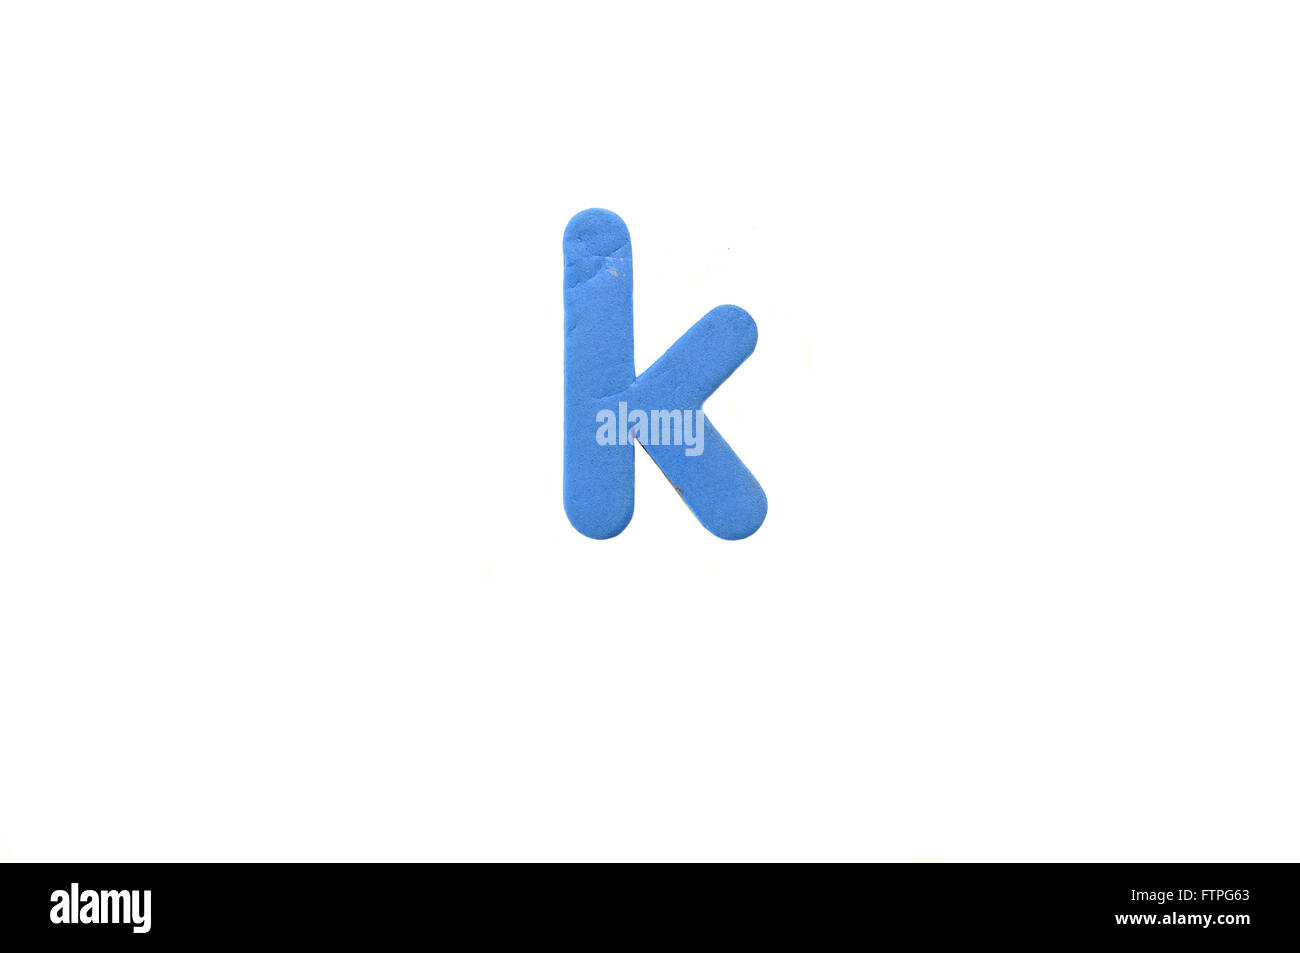 A letter K fridge magnet photographed against a white background. - Stock Image